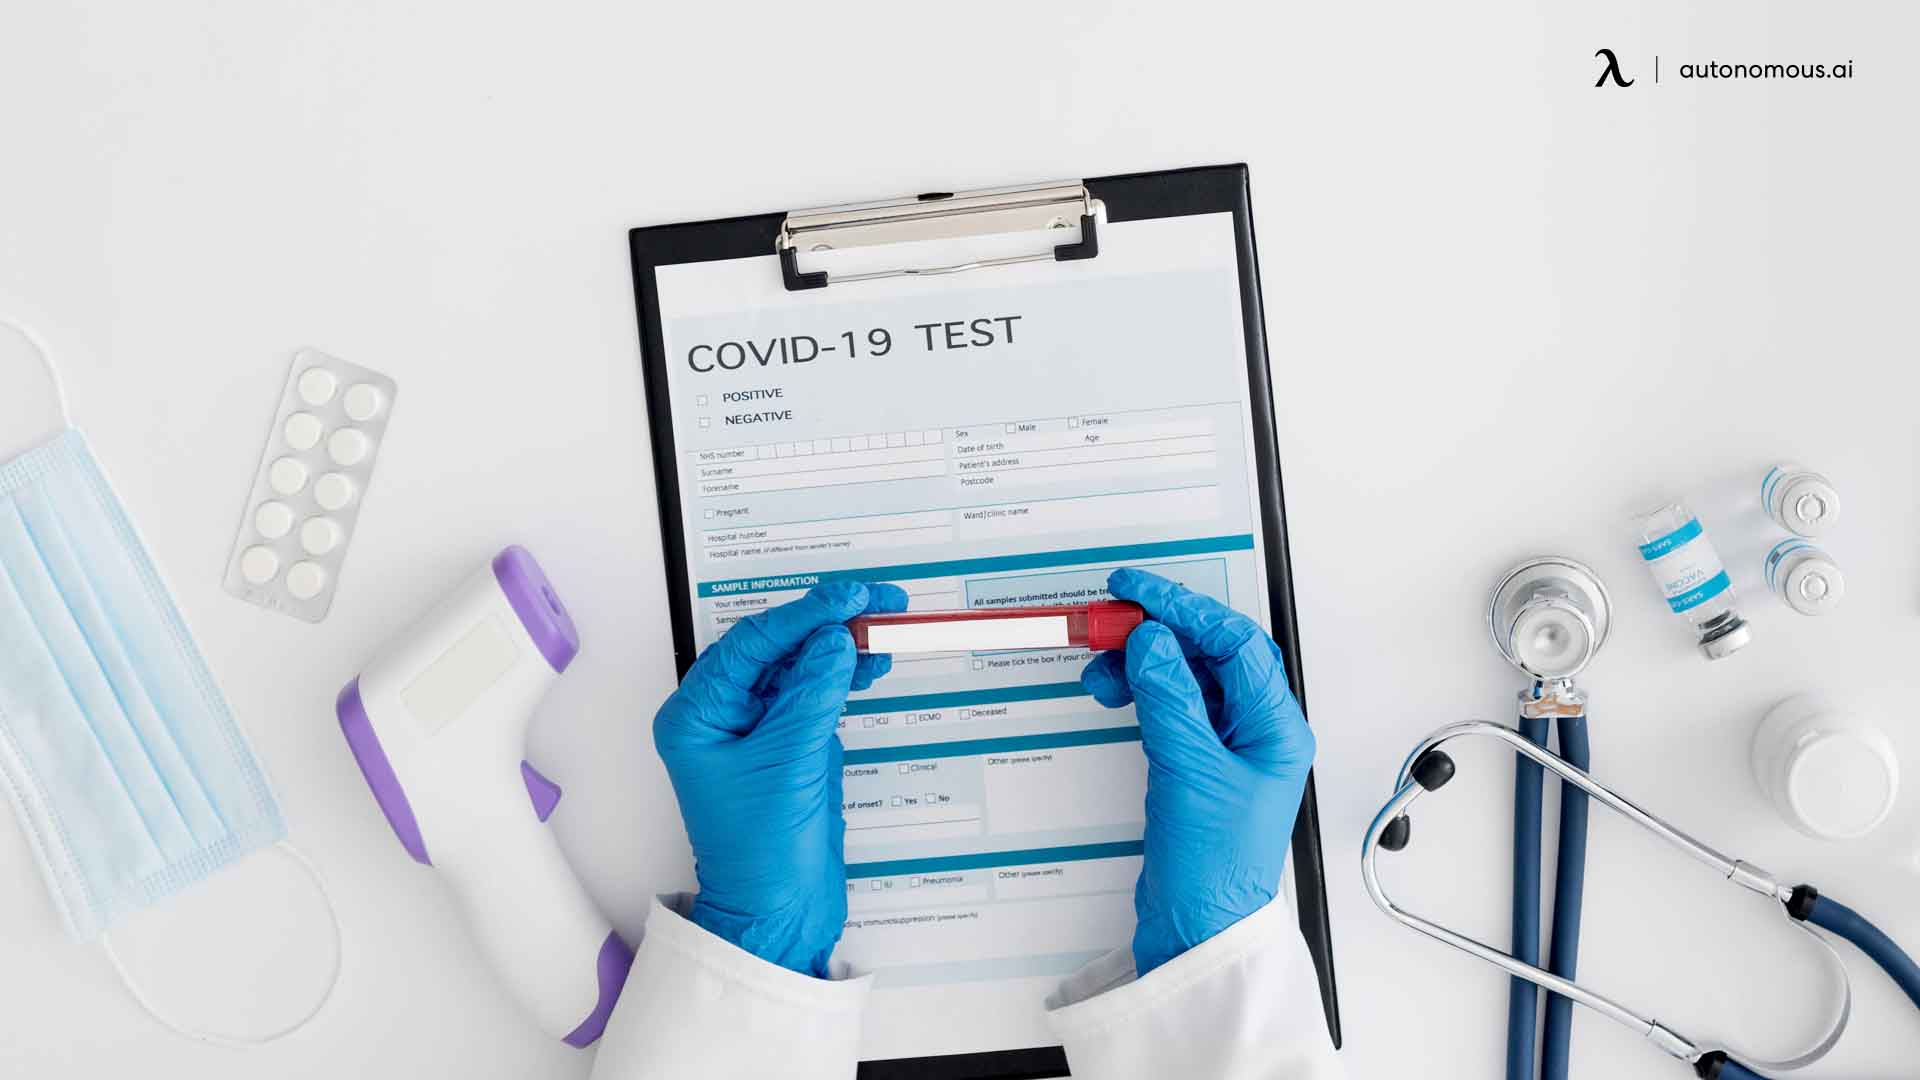 What to do if you test positive but have no symptoms?